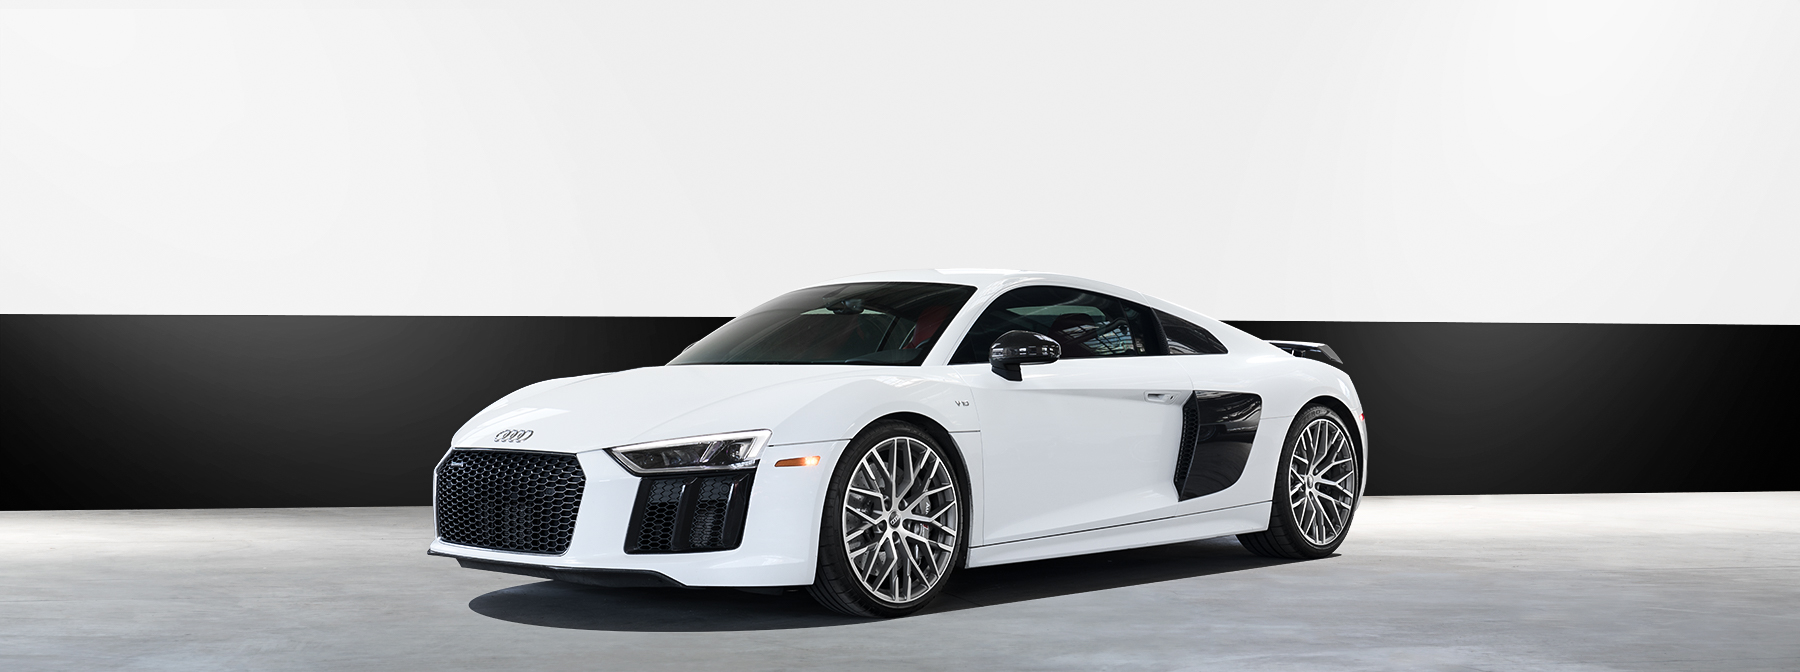 Rent An Audi R8 In Los Angeles